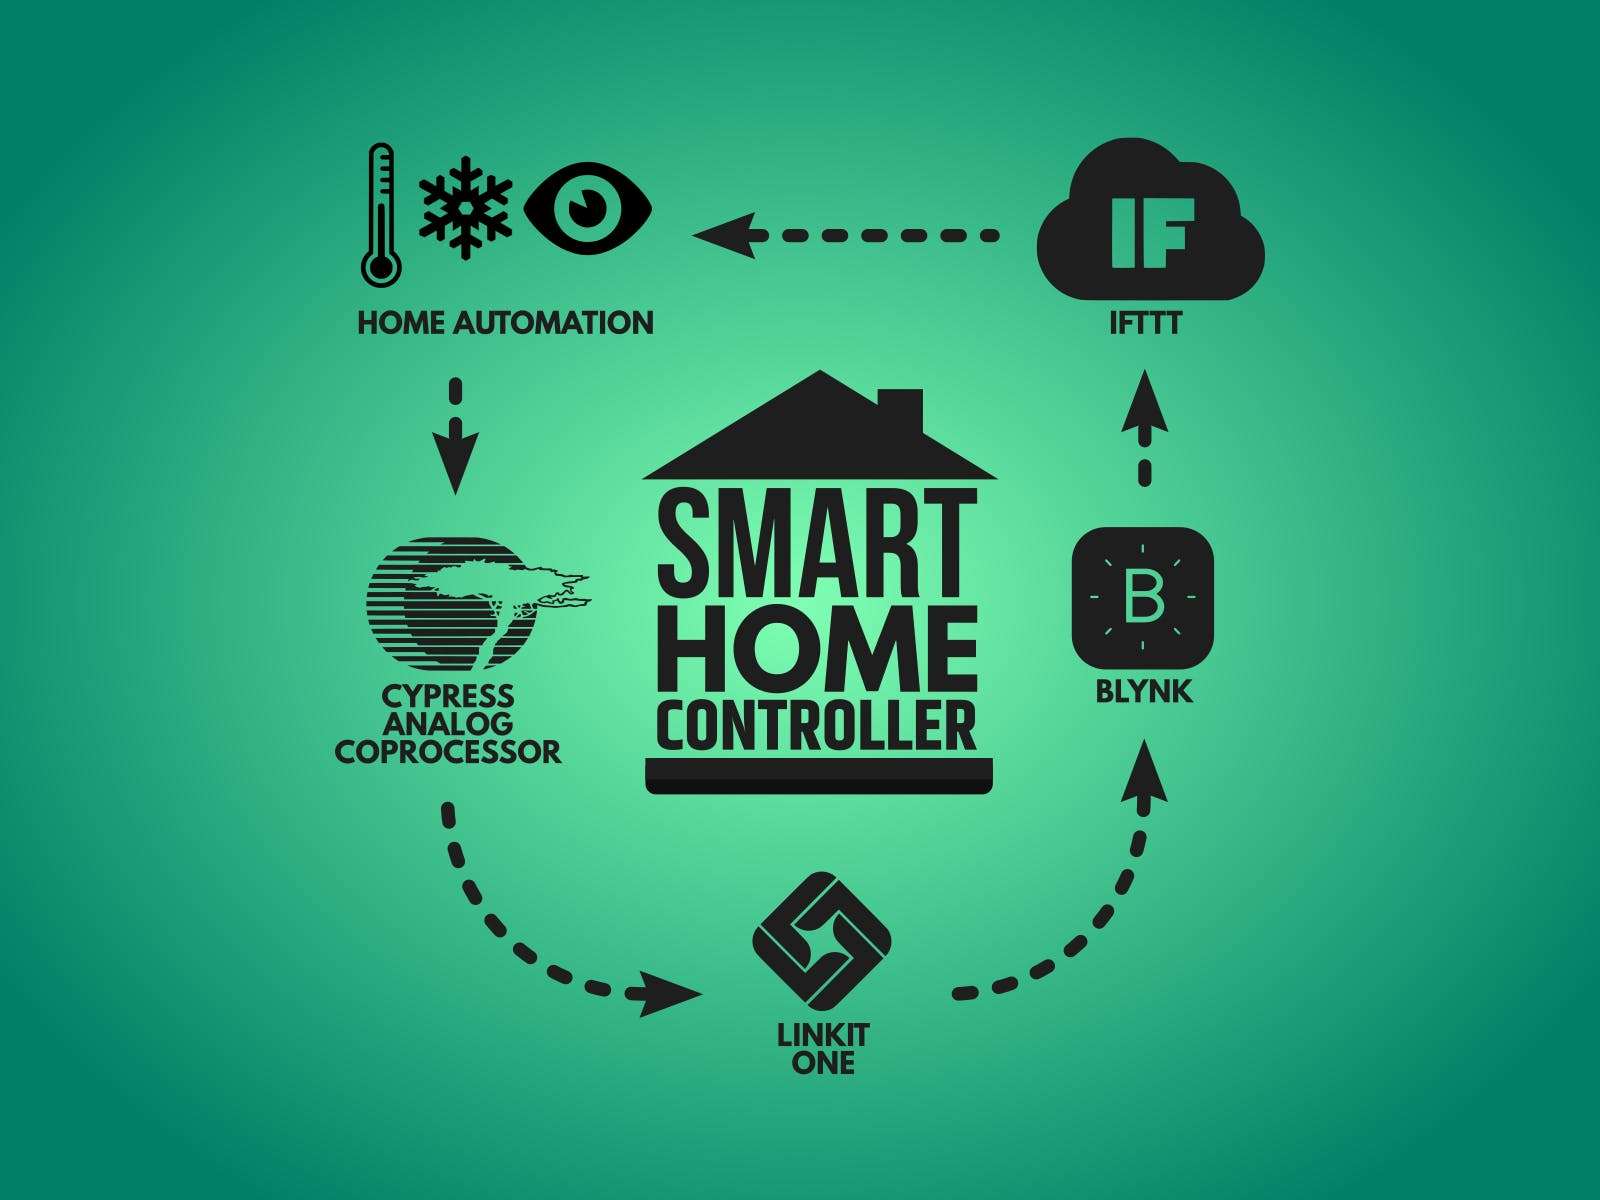 Smart Home Controller using PSoC and LinkIt ONE